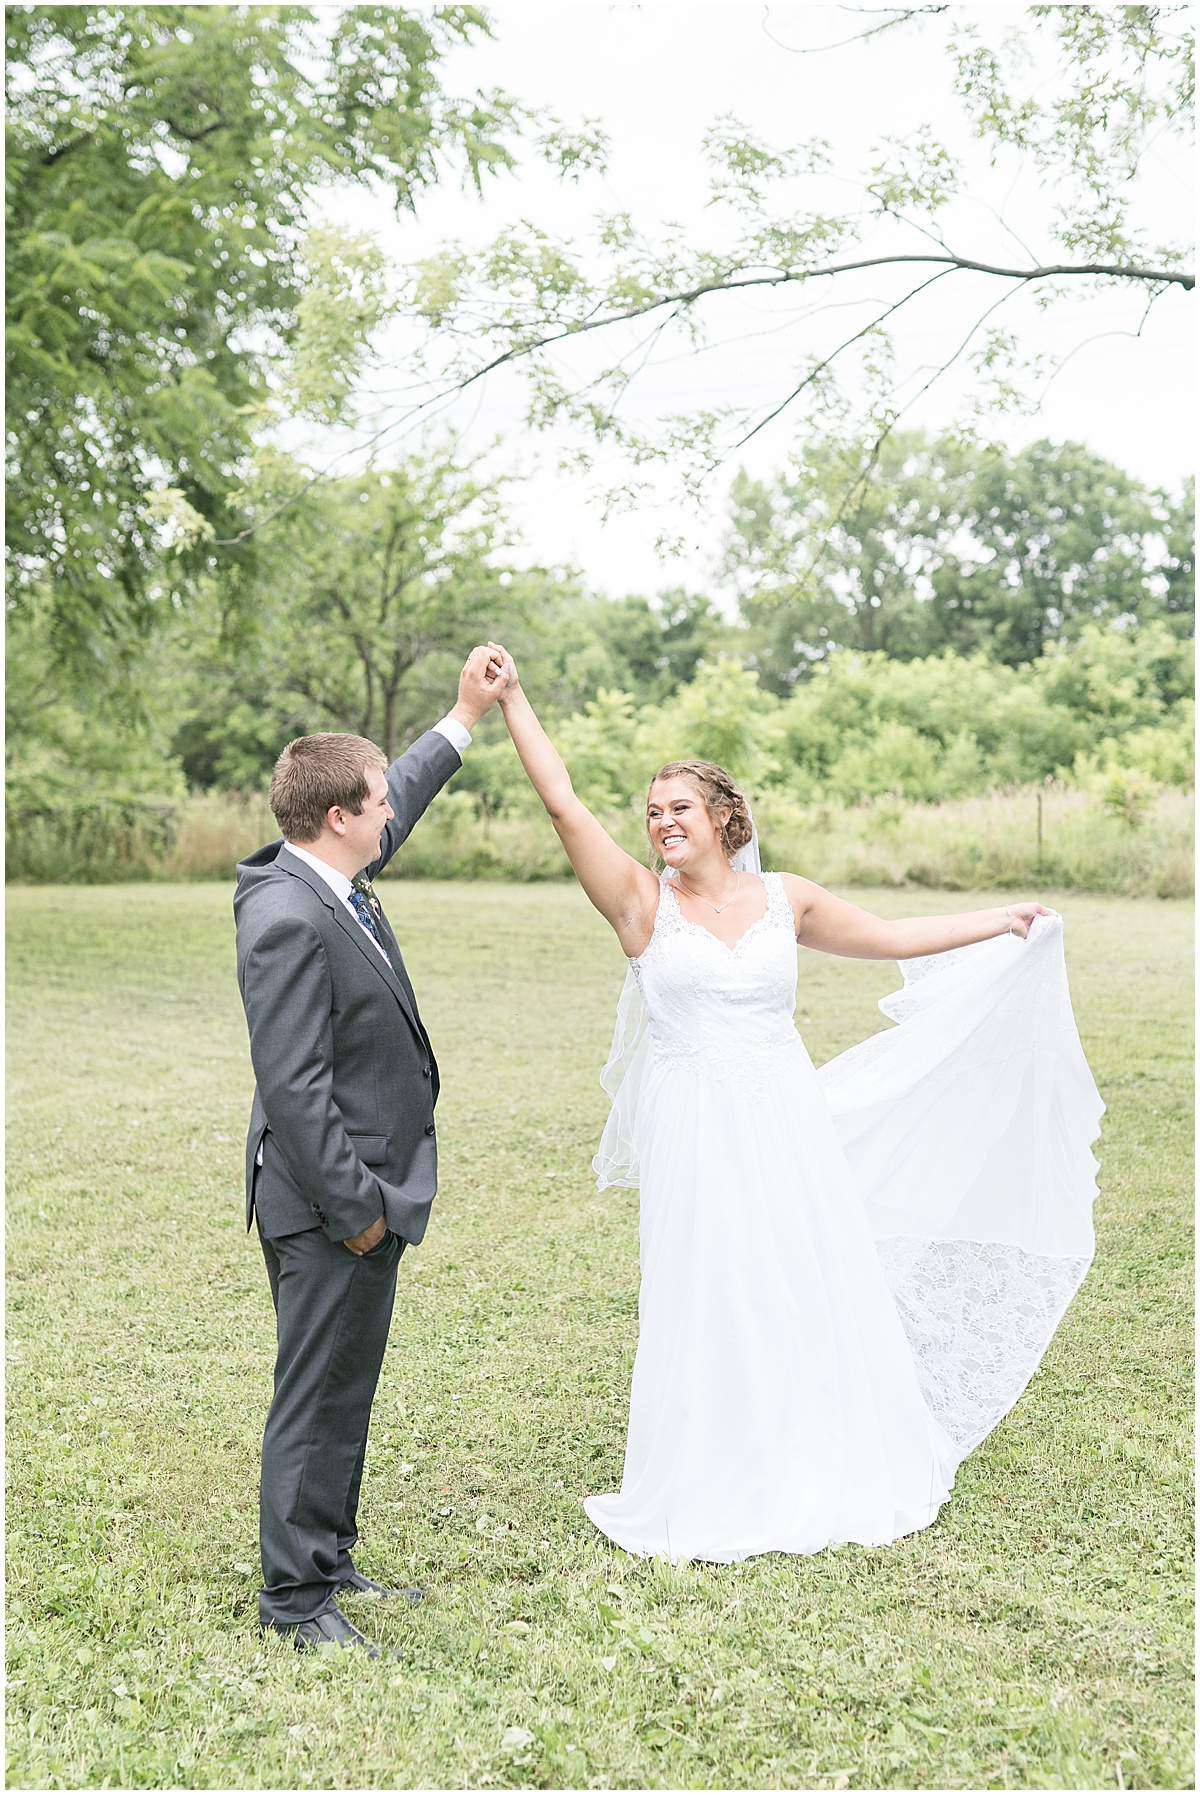 Bride and groom photo at Hawk Point Acres Wedding in Anderson, Indiana